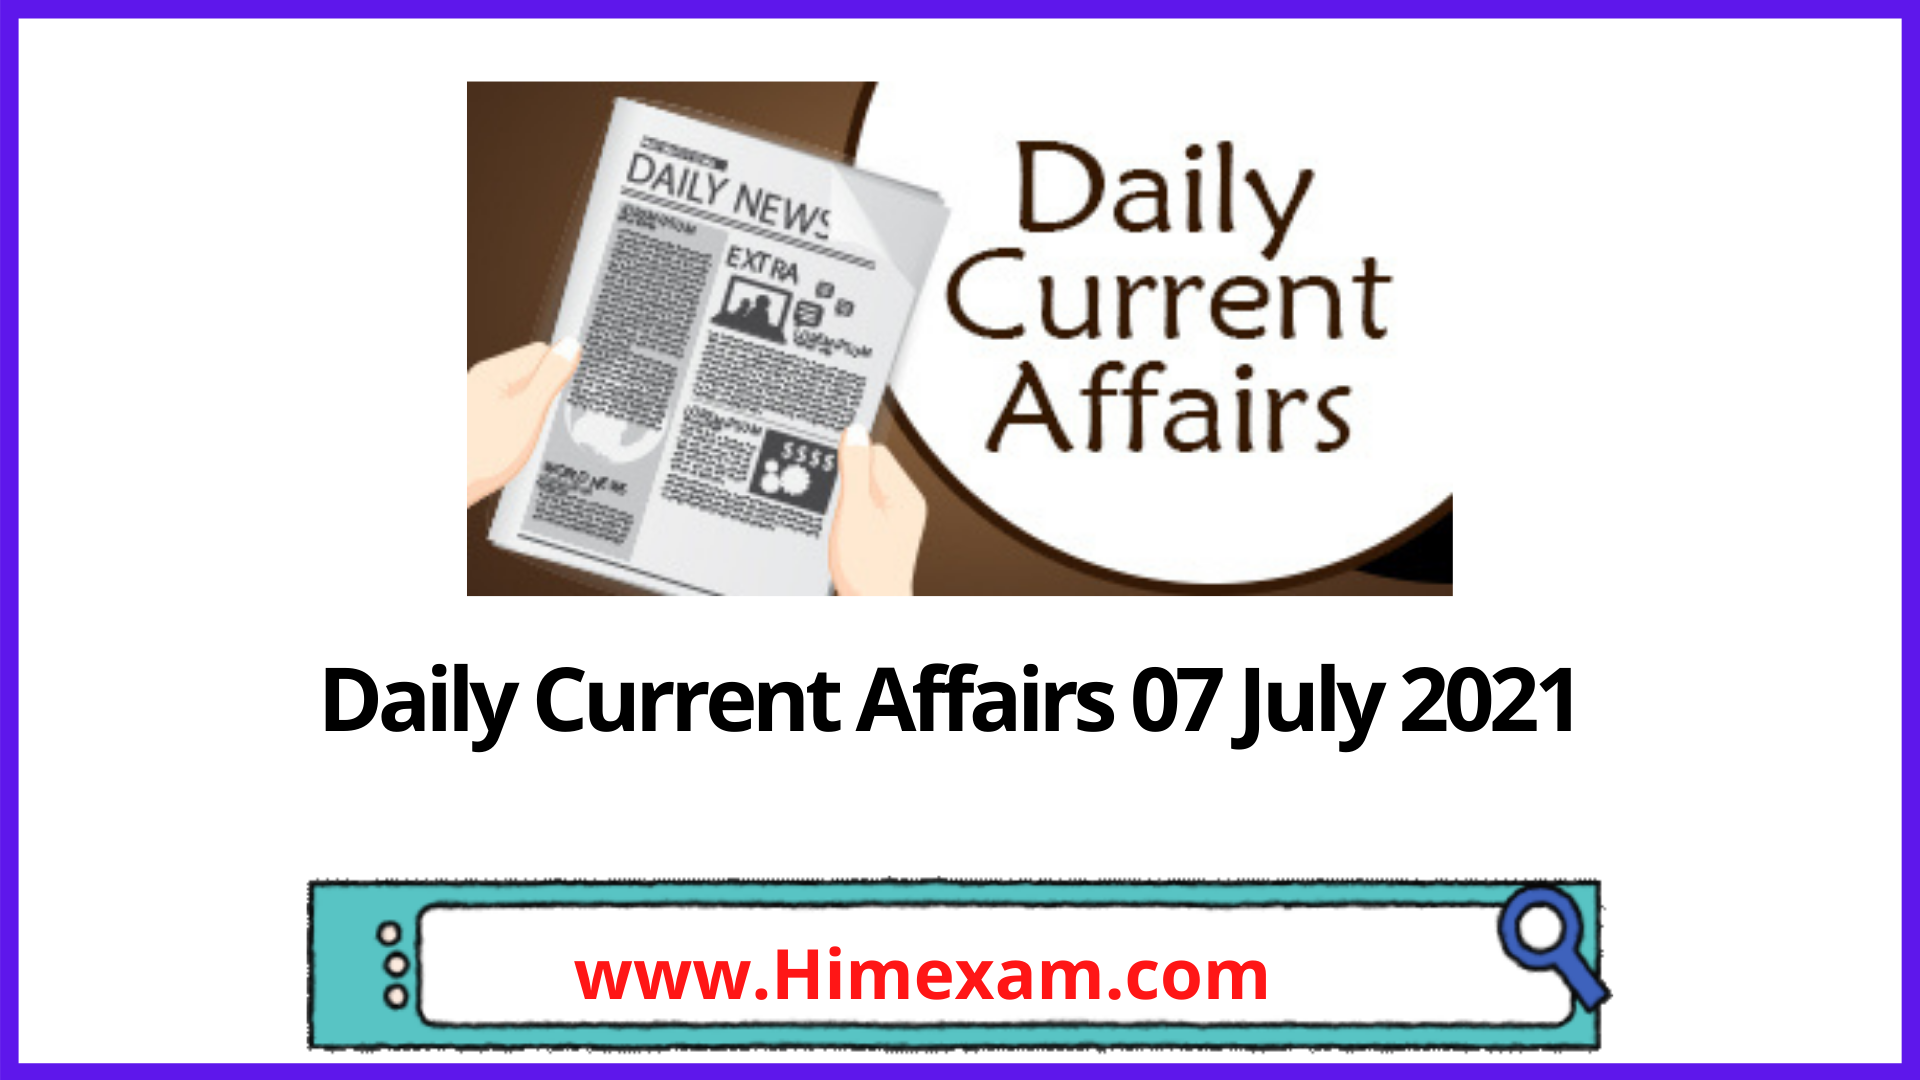 Daily Current Affairs 07 July 2021